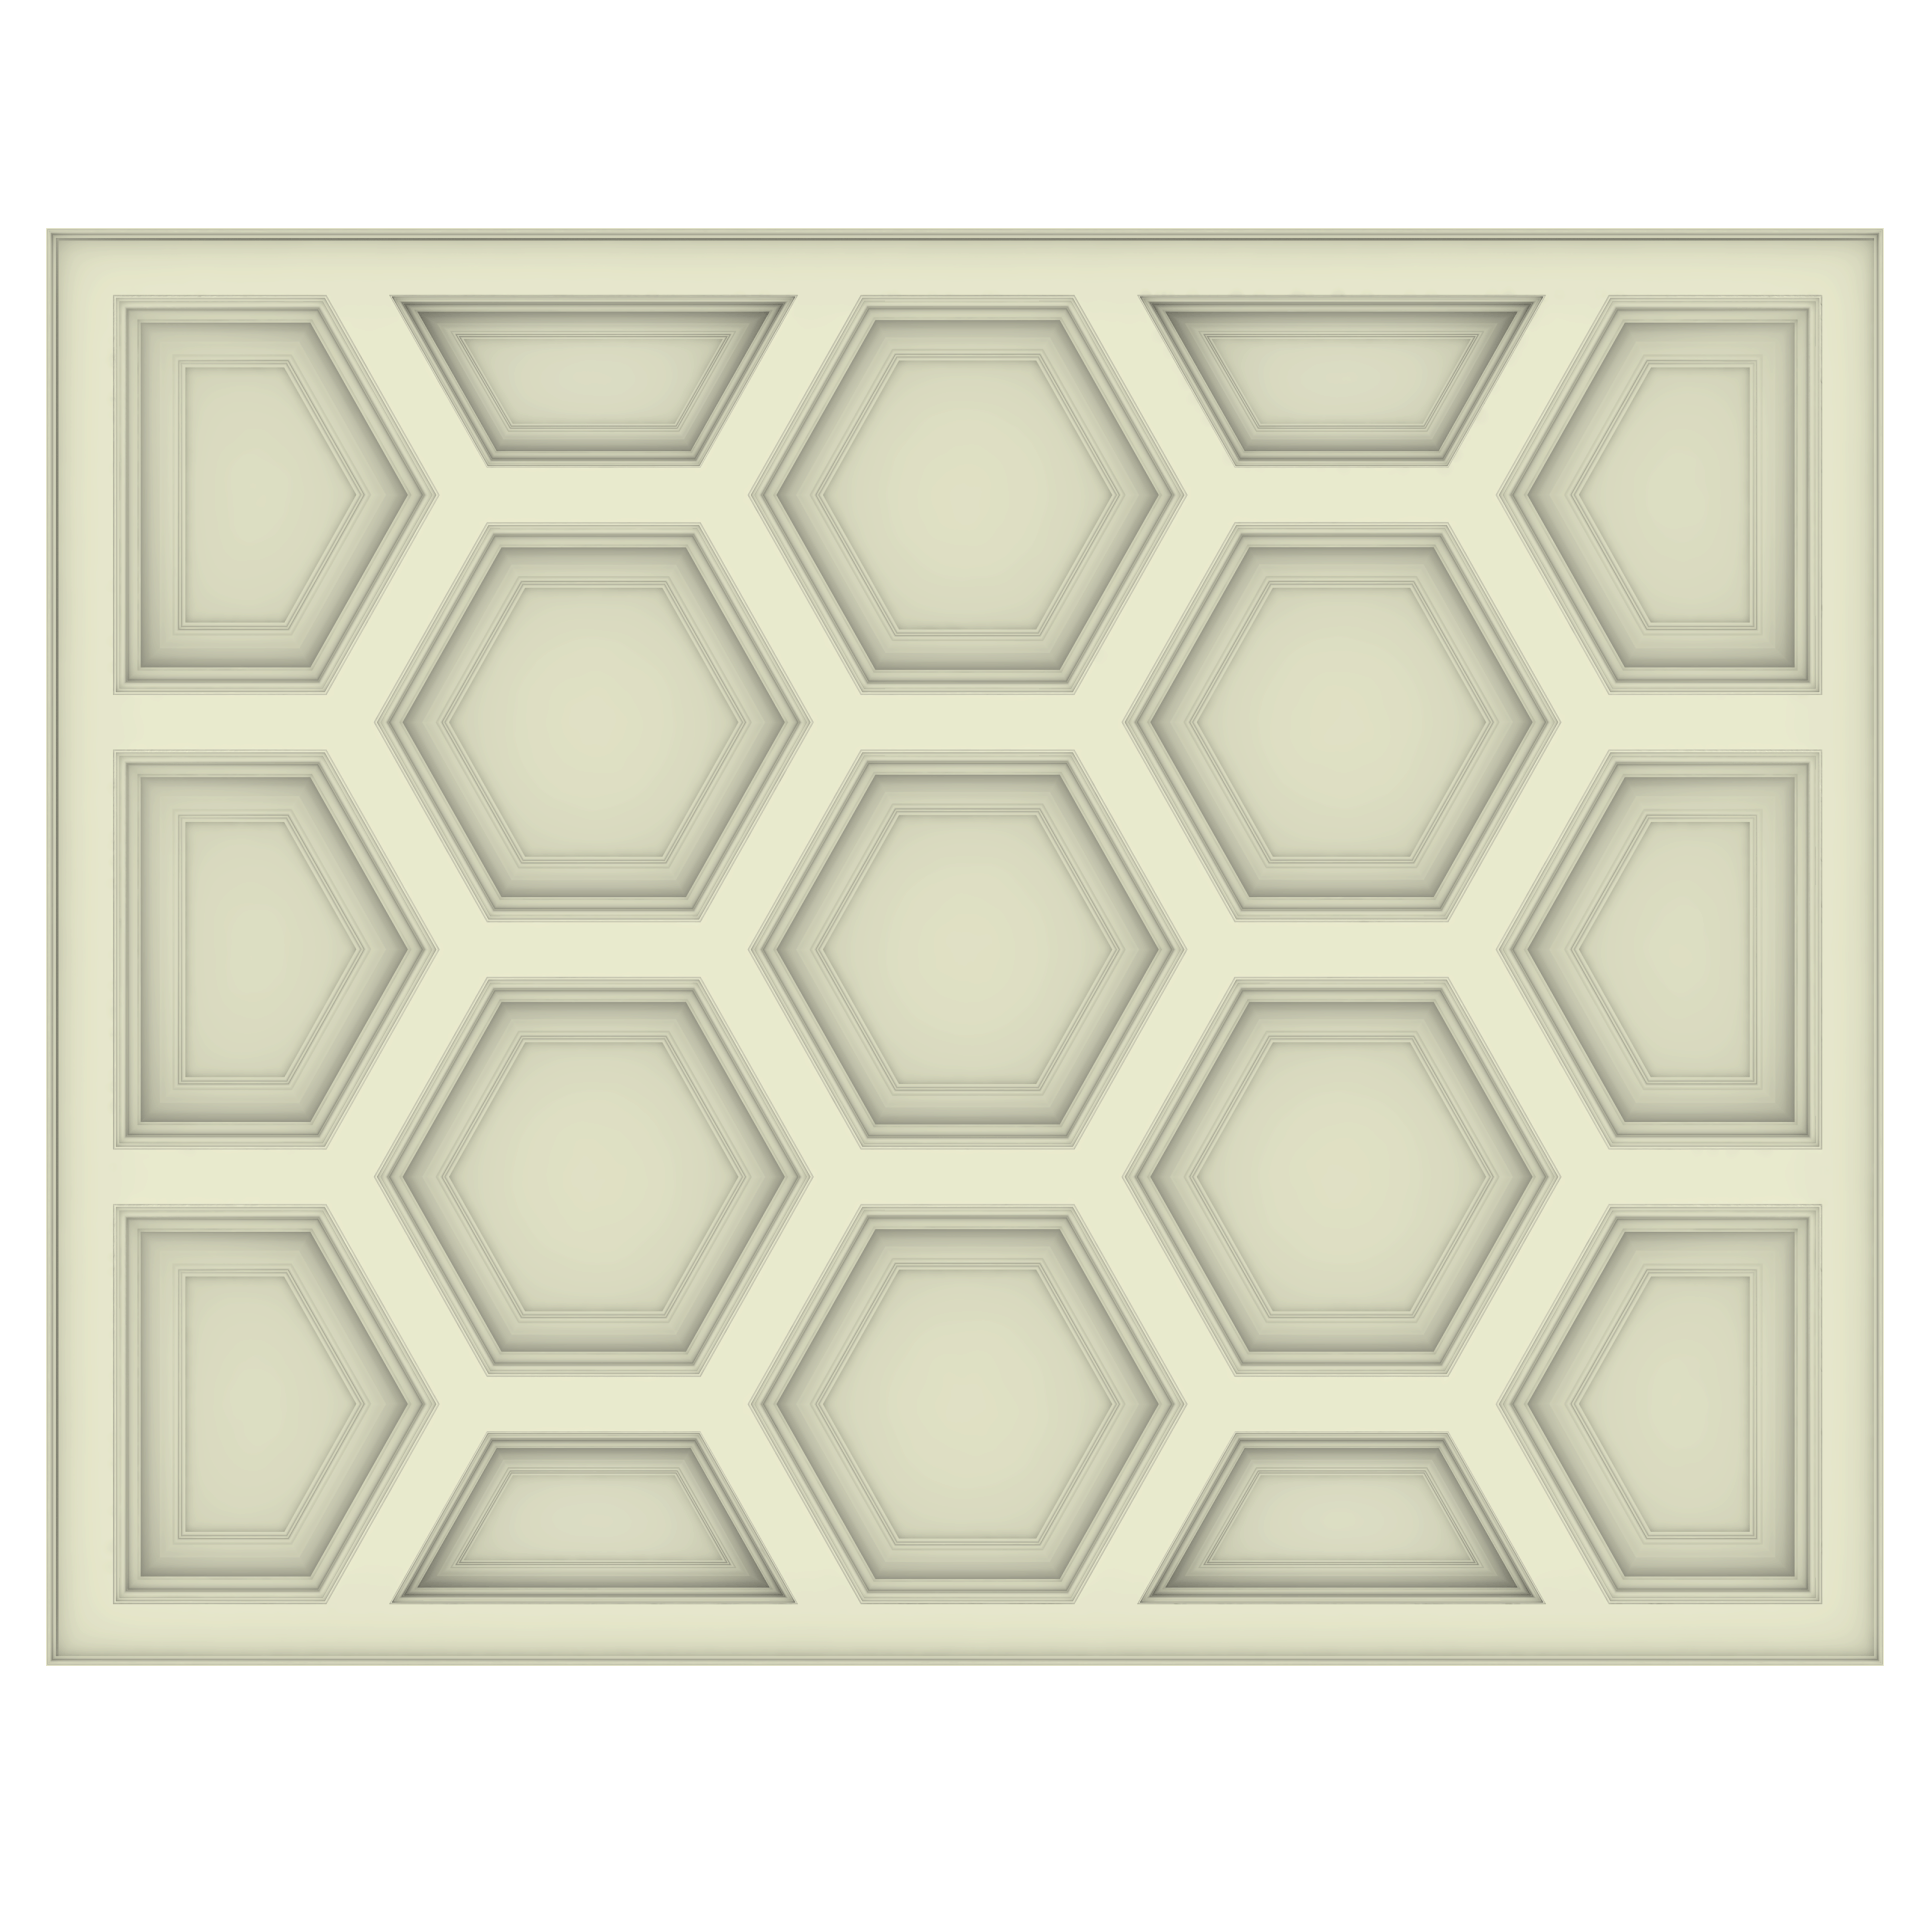 Hexagon Coffered Ceiling